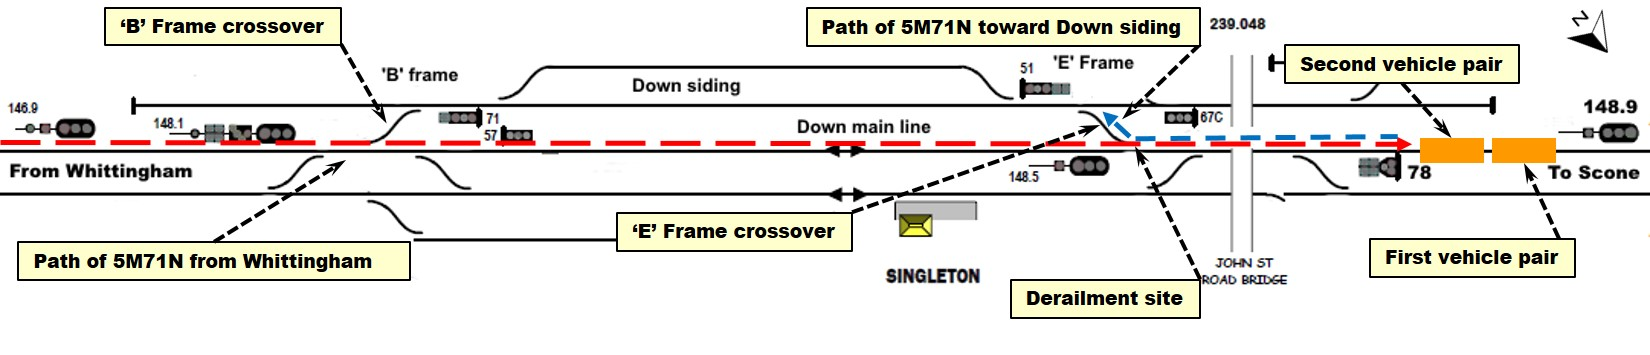 Figure 2: Singleton yard simplified track and signal layout